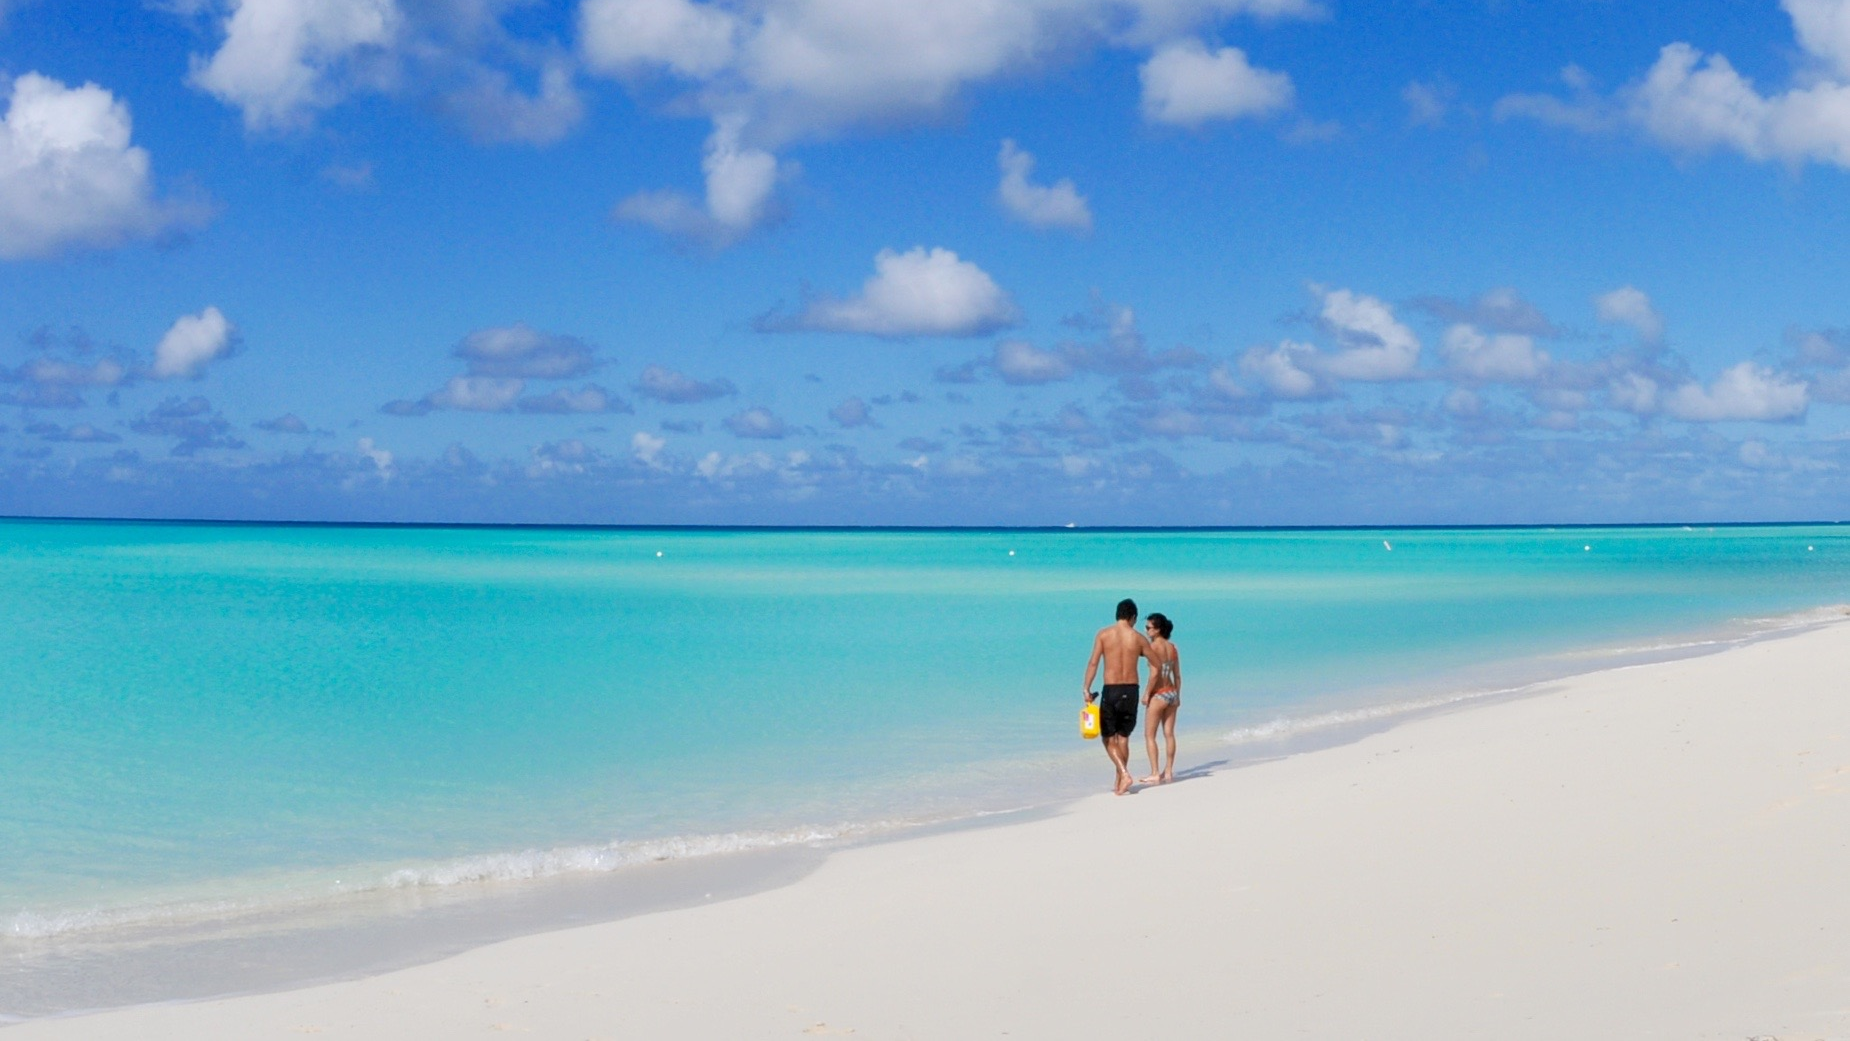 spring in turks and caicos